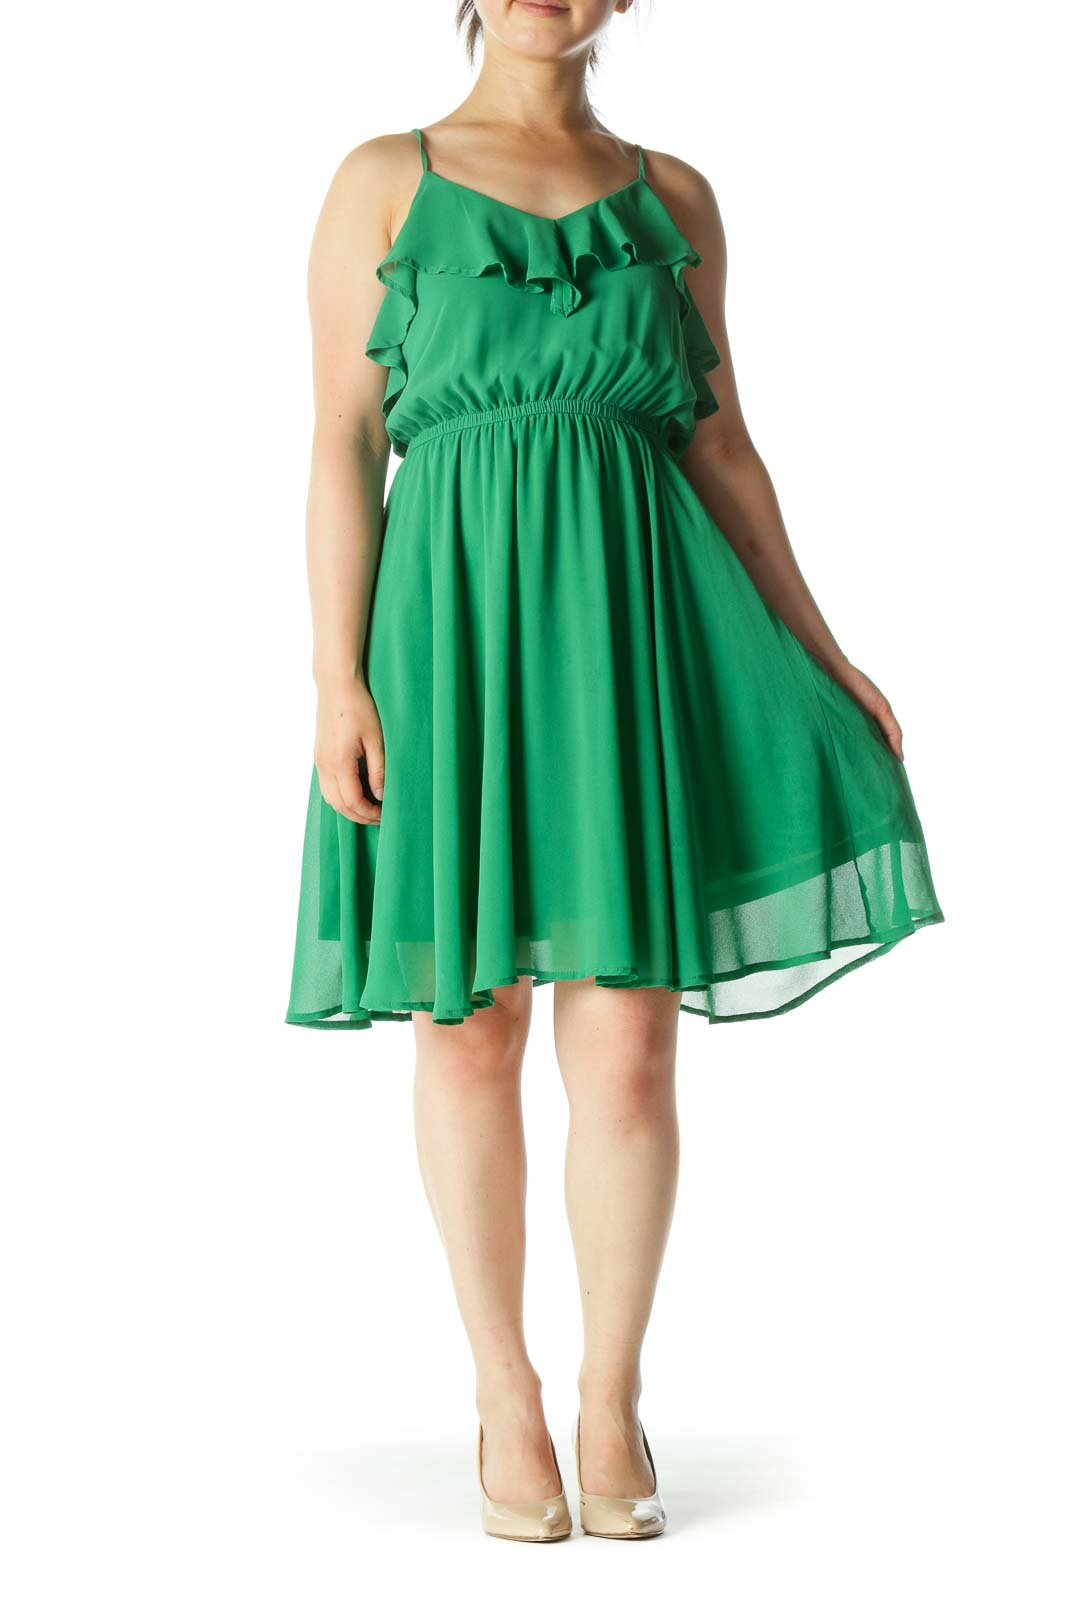 Green Ruffle Chiffon Midi Dress